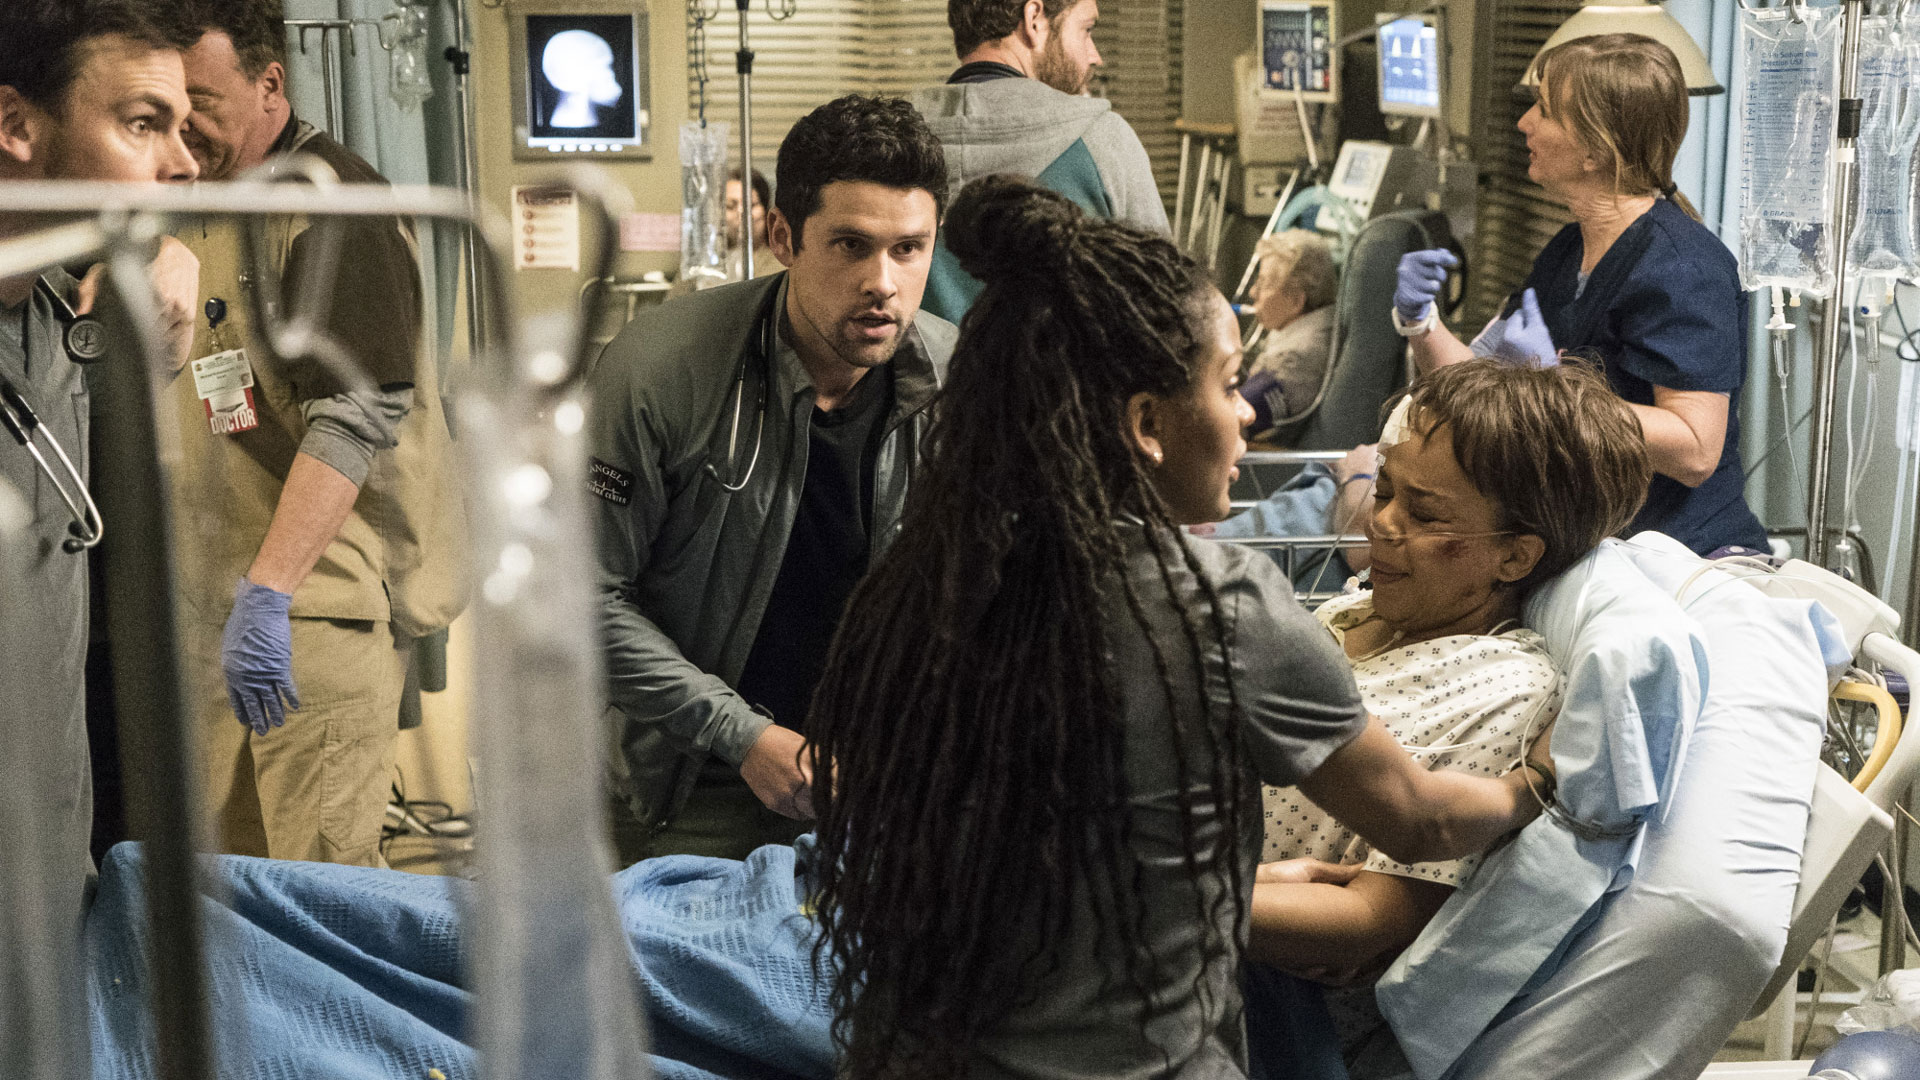 Tommy Dewey as Dr. Mike Leighton, Benjamin Hollingsworth as Dr. Mario Savetti, and Meagan Good as Dr. Grace Adams